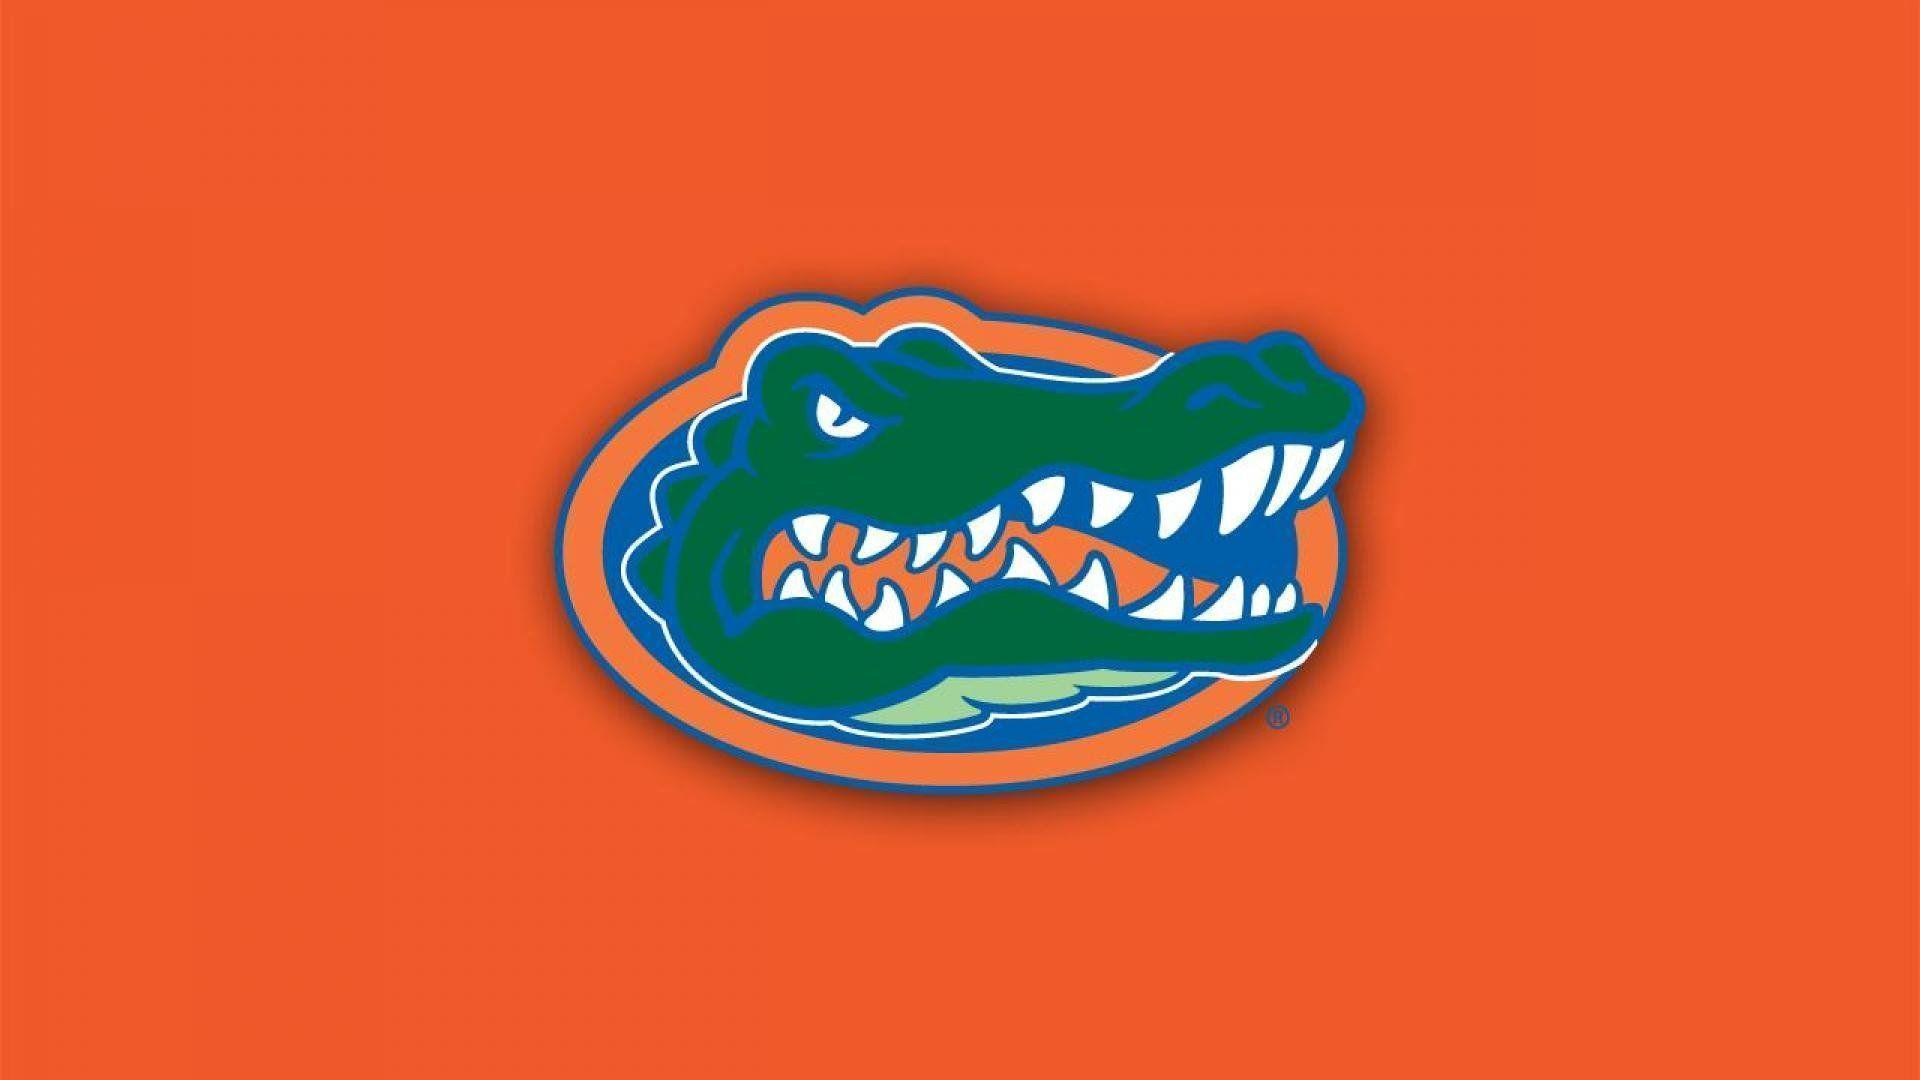 Florida Gators Wallpaper HD | Pixels Talk